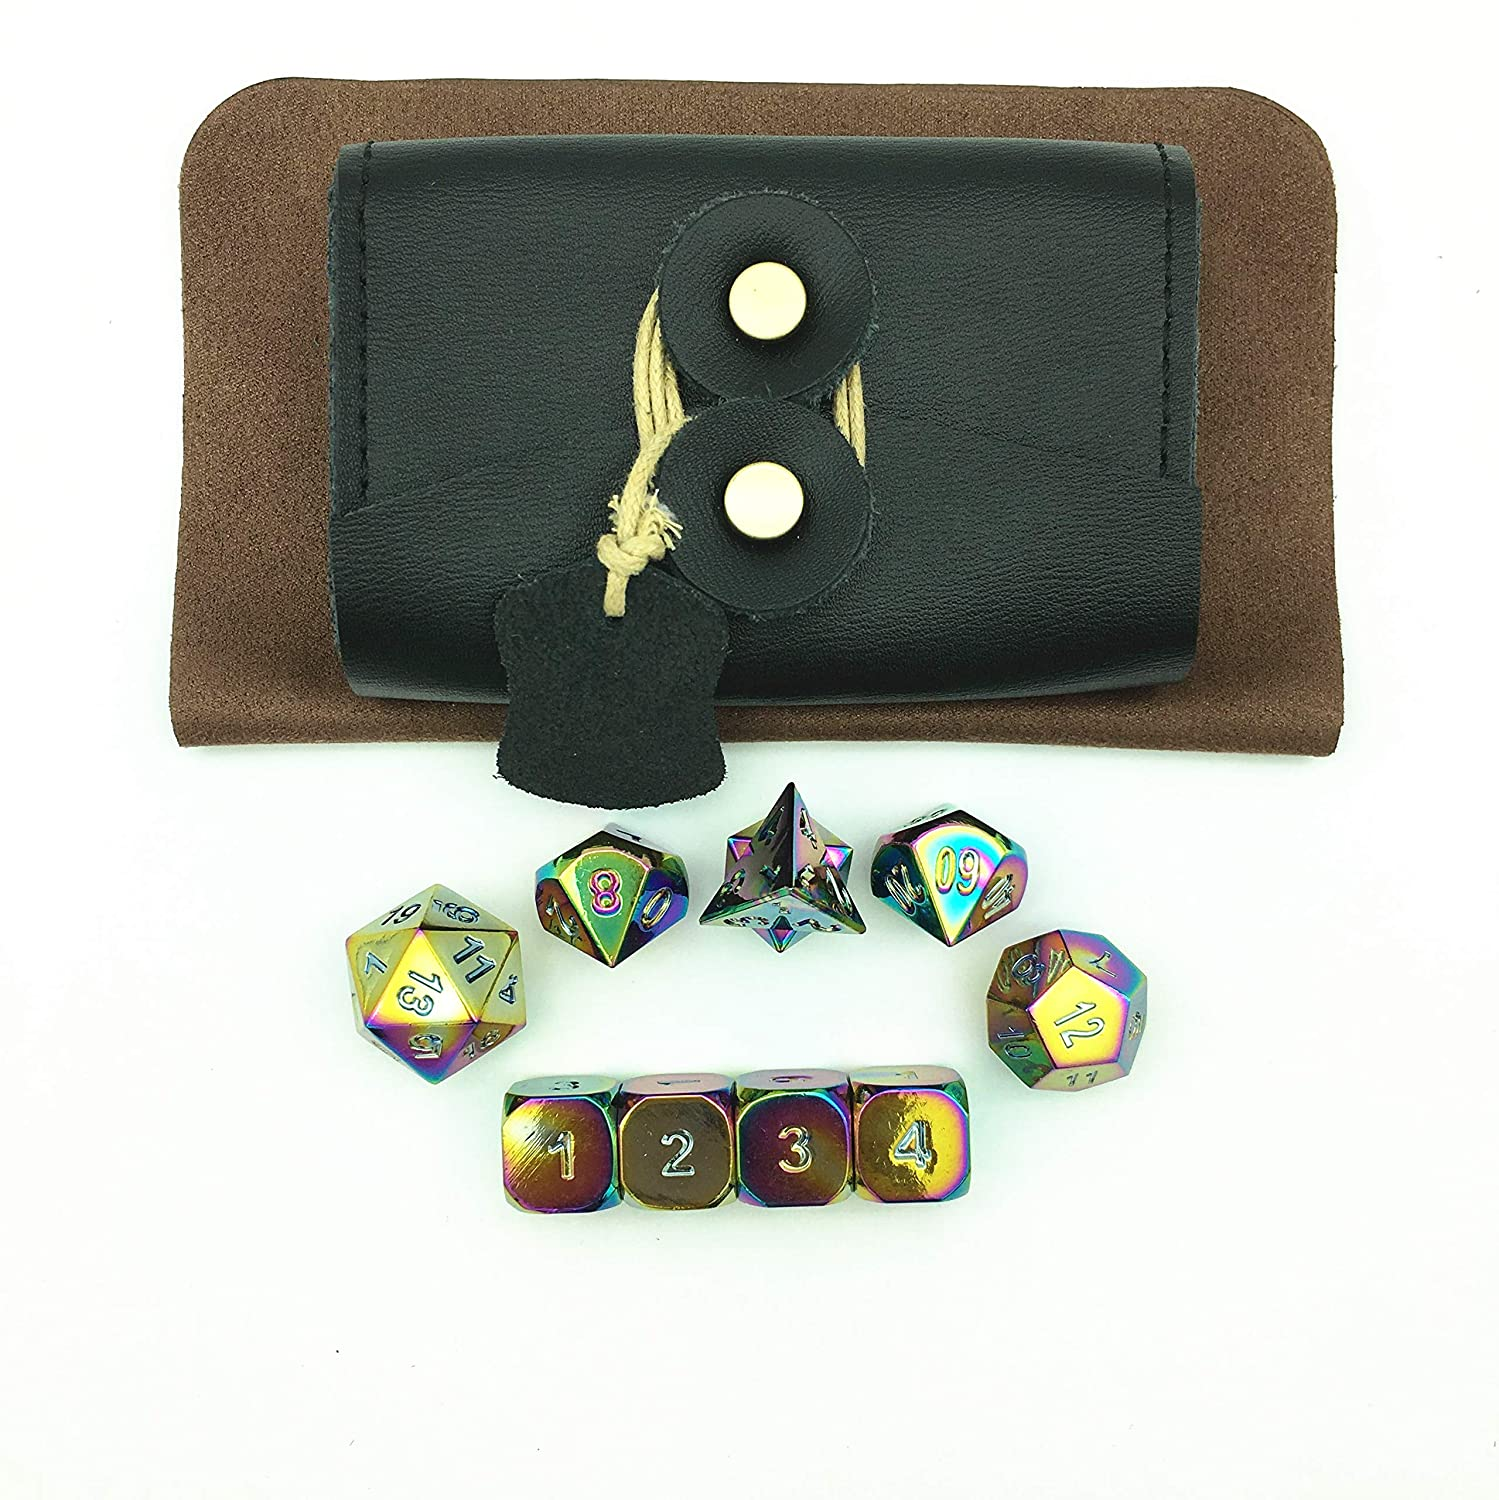 Amazon.com : Amatolo Solid Metal Polyhedral Dice Dungeons Dragons ...